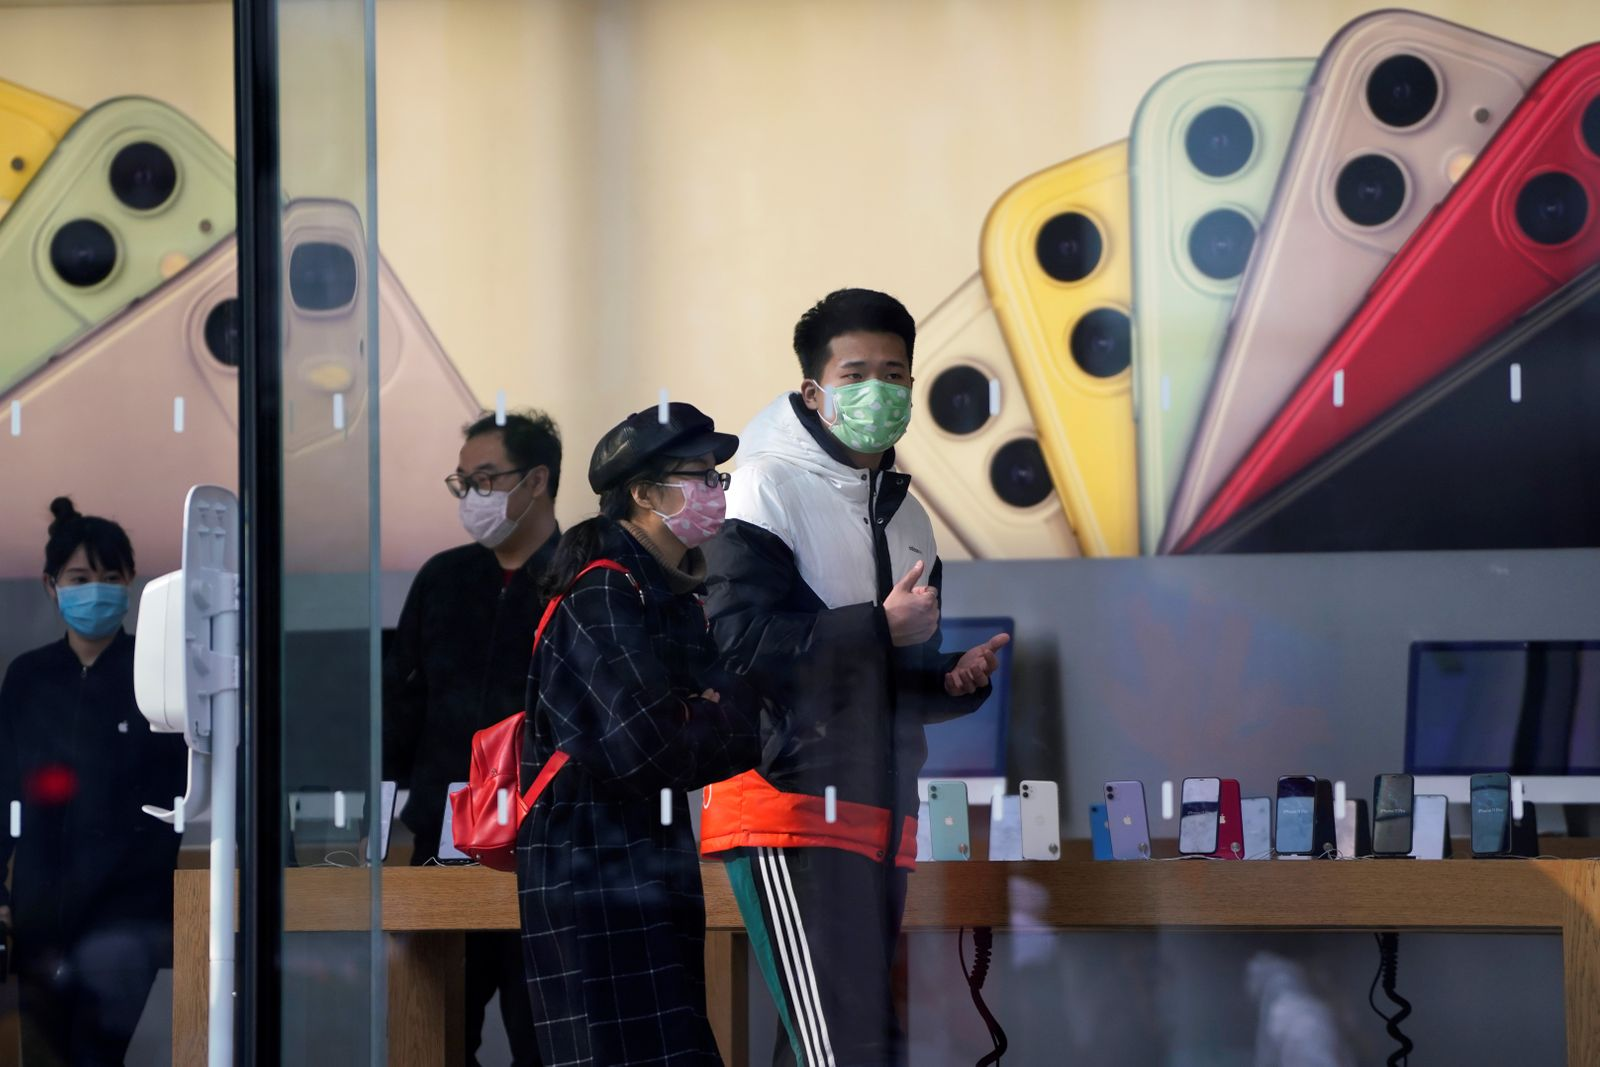 People wearing protective masks are seen in an Apple Store, as China is hit by an outbreak of the new coronavirus, in Shanghai